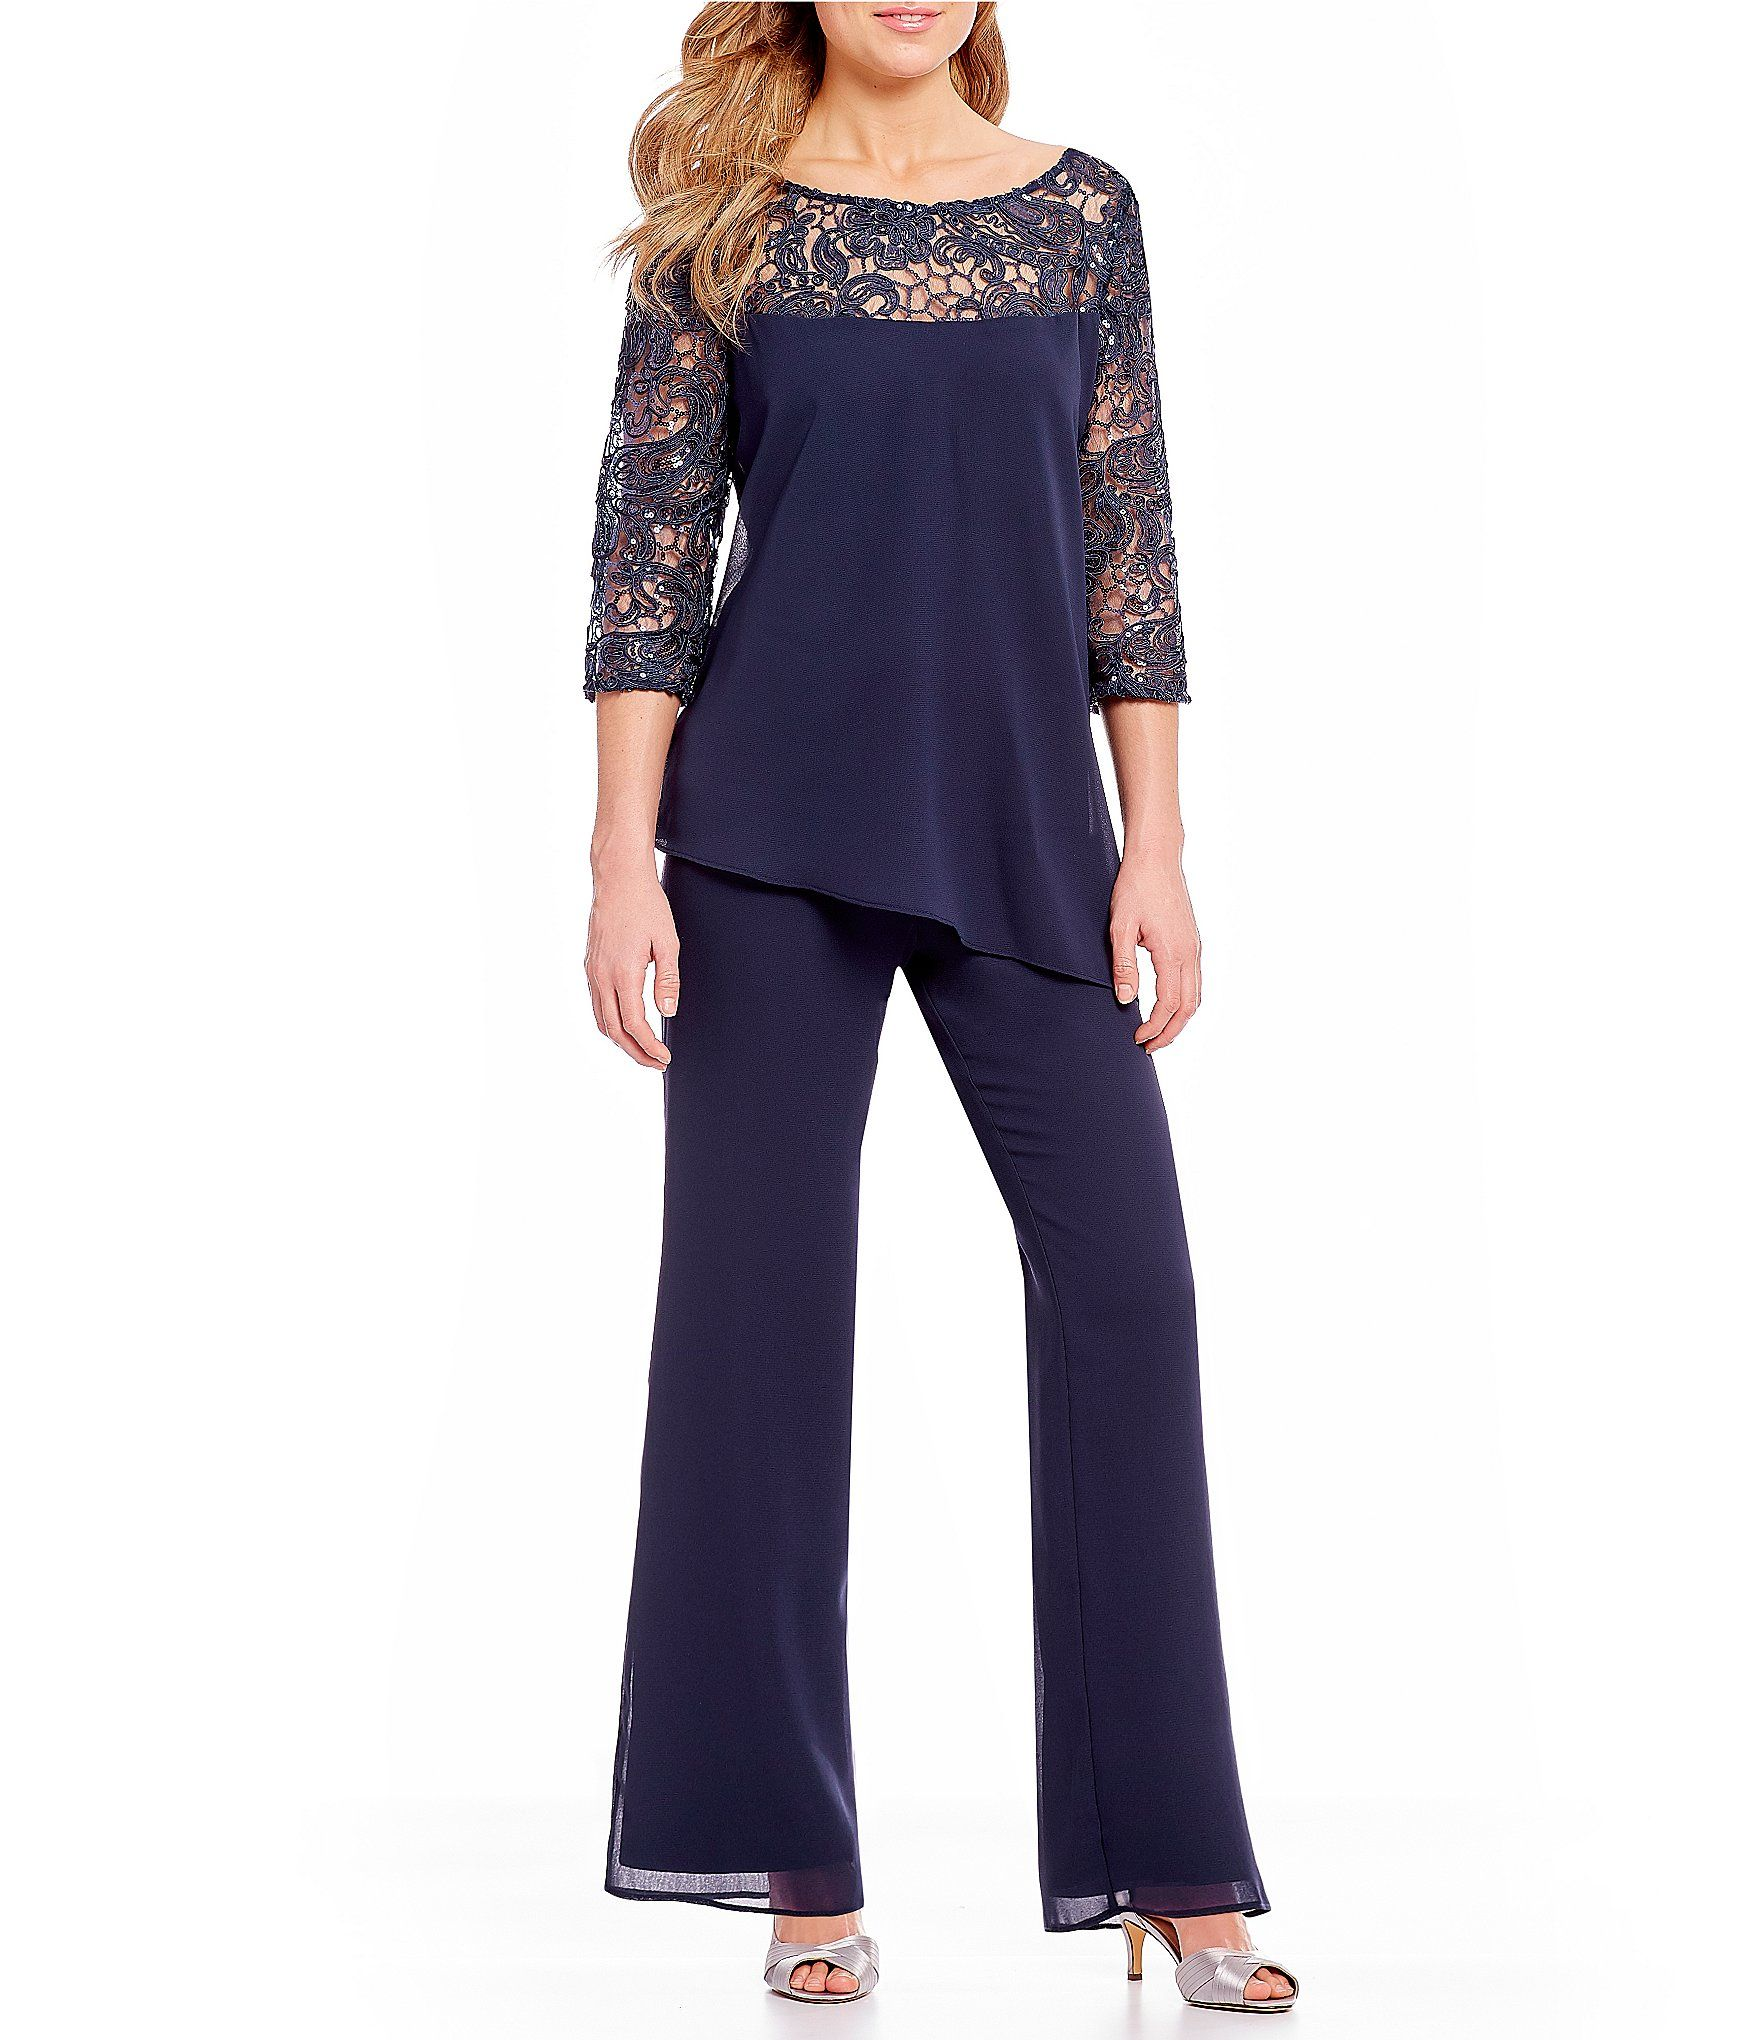 Shop For Le Bos Sequined Lace Tunic 2-Piece Pant Set At